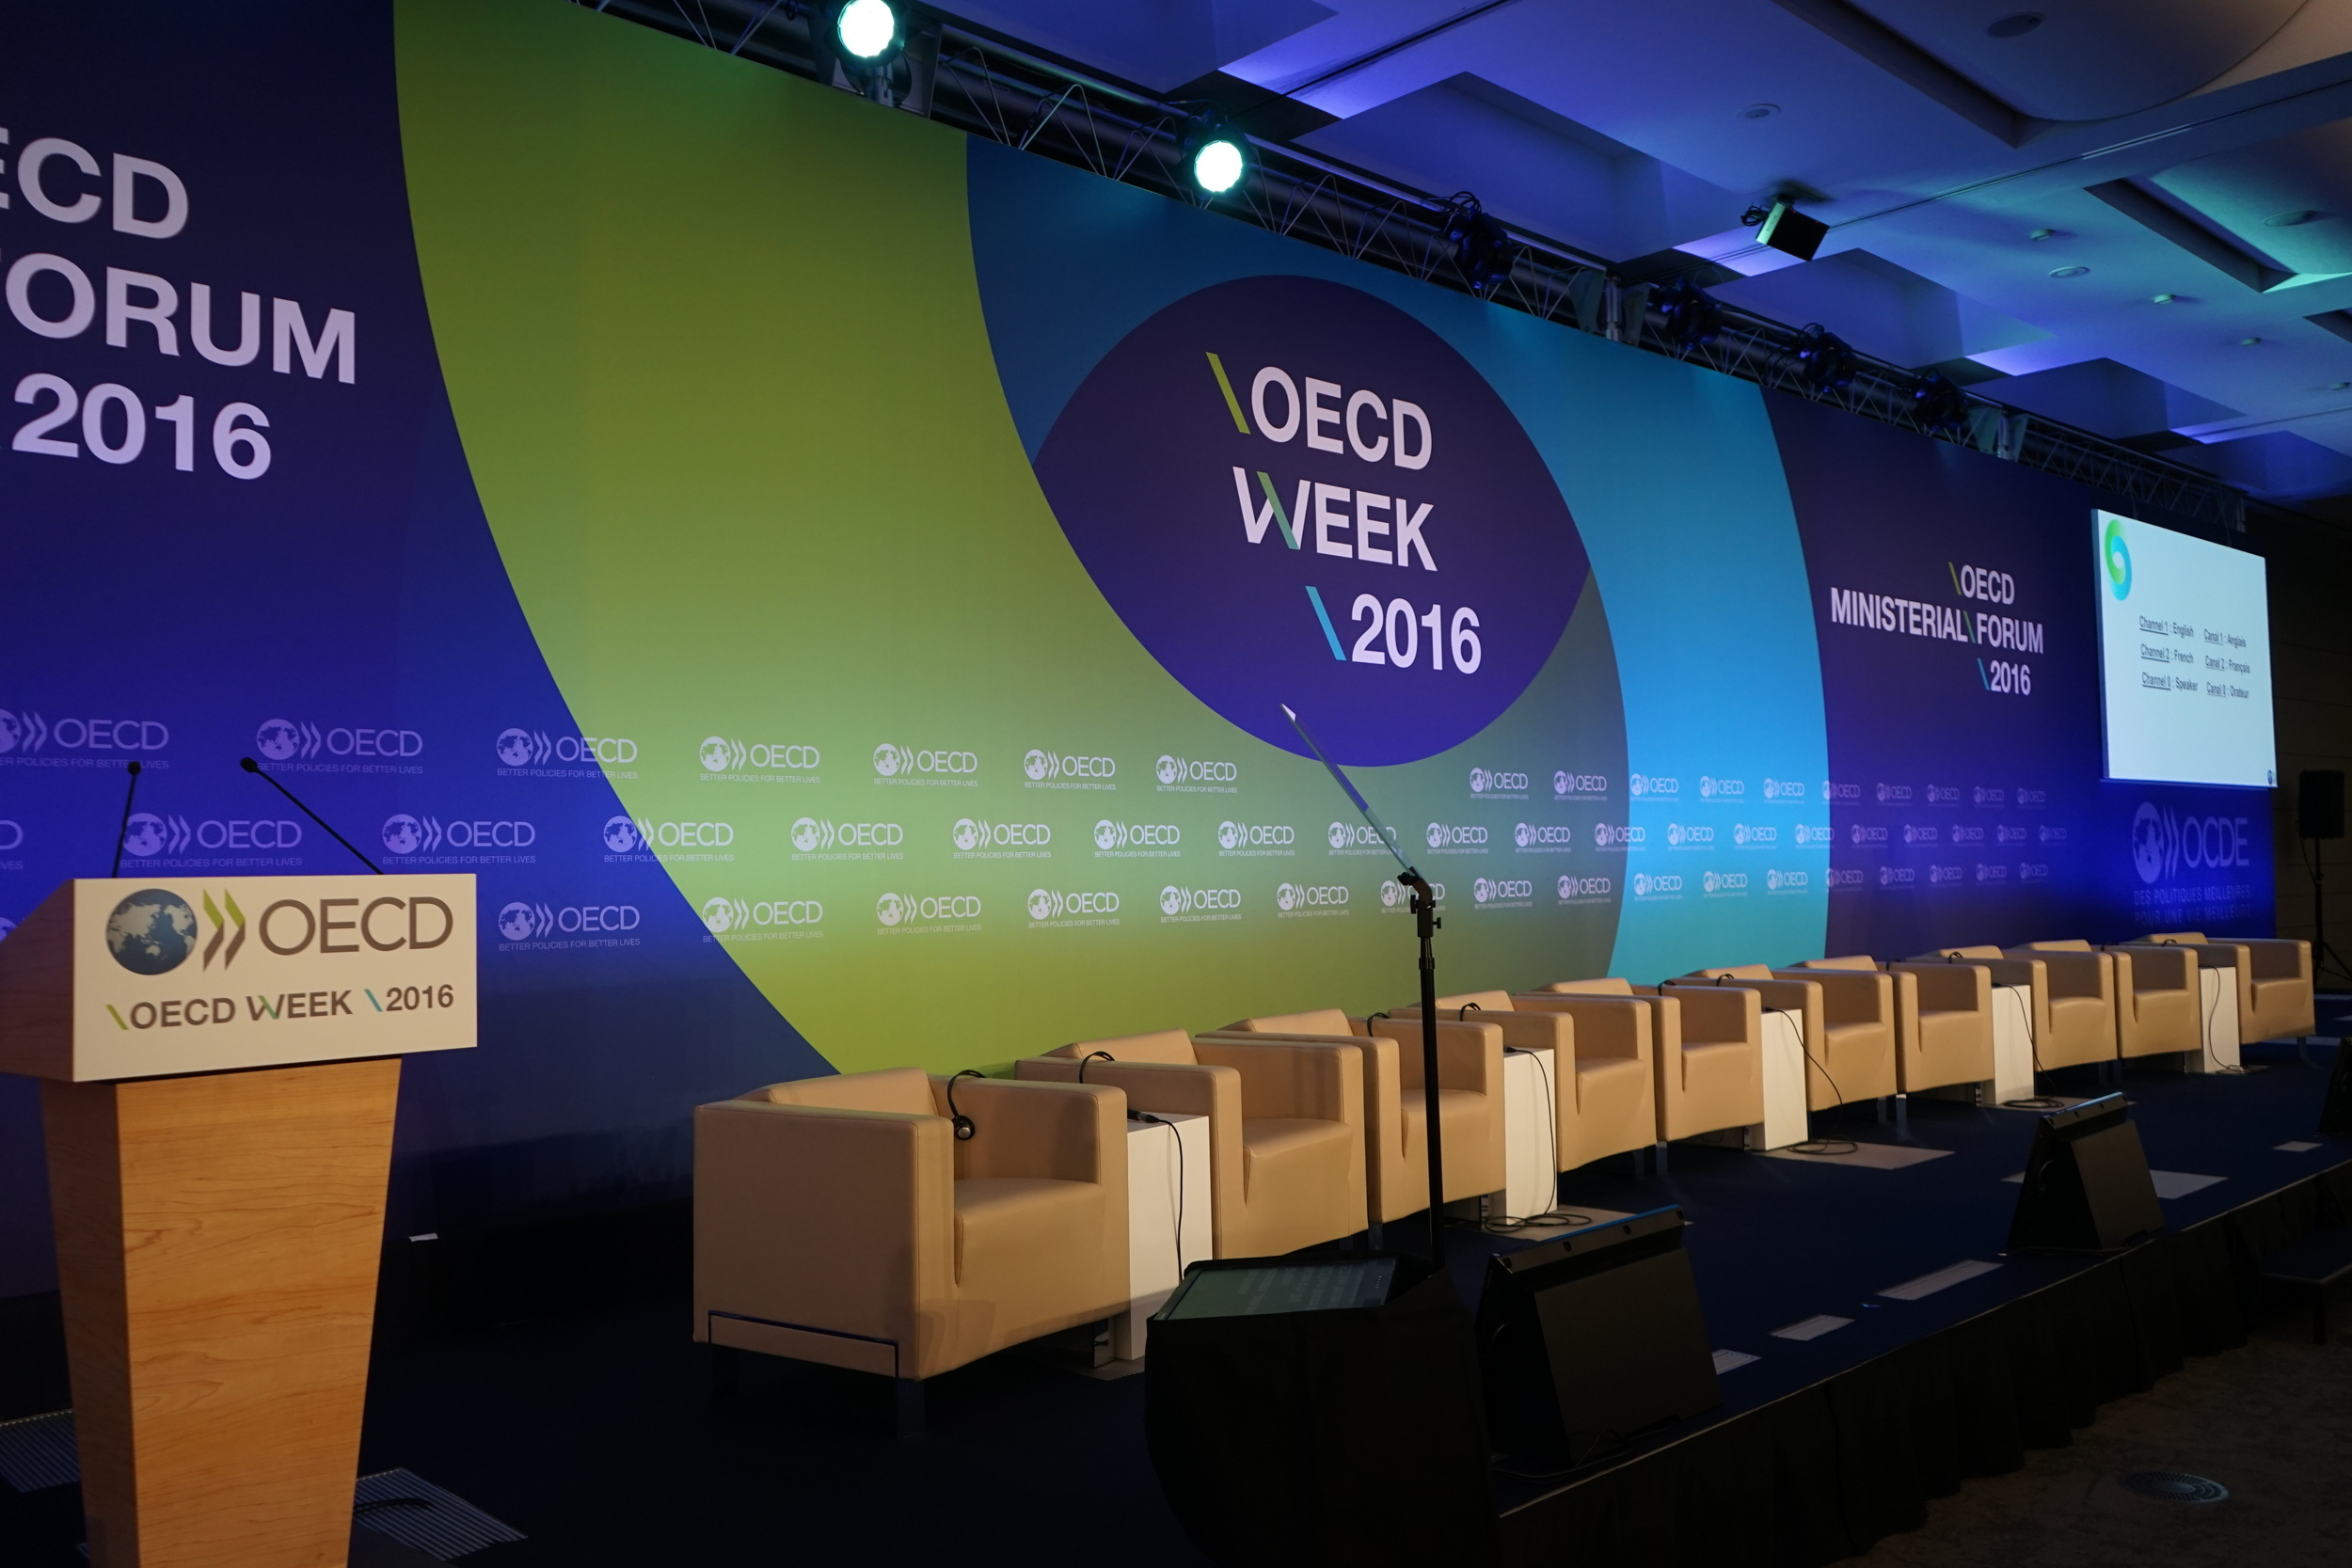 Main OECD Forum auditorium(2).JPG